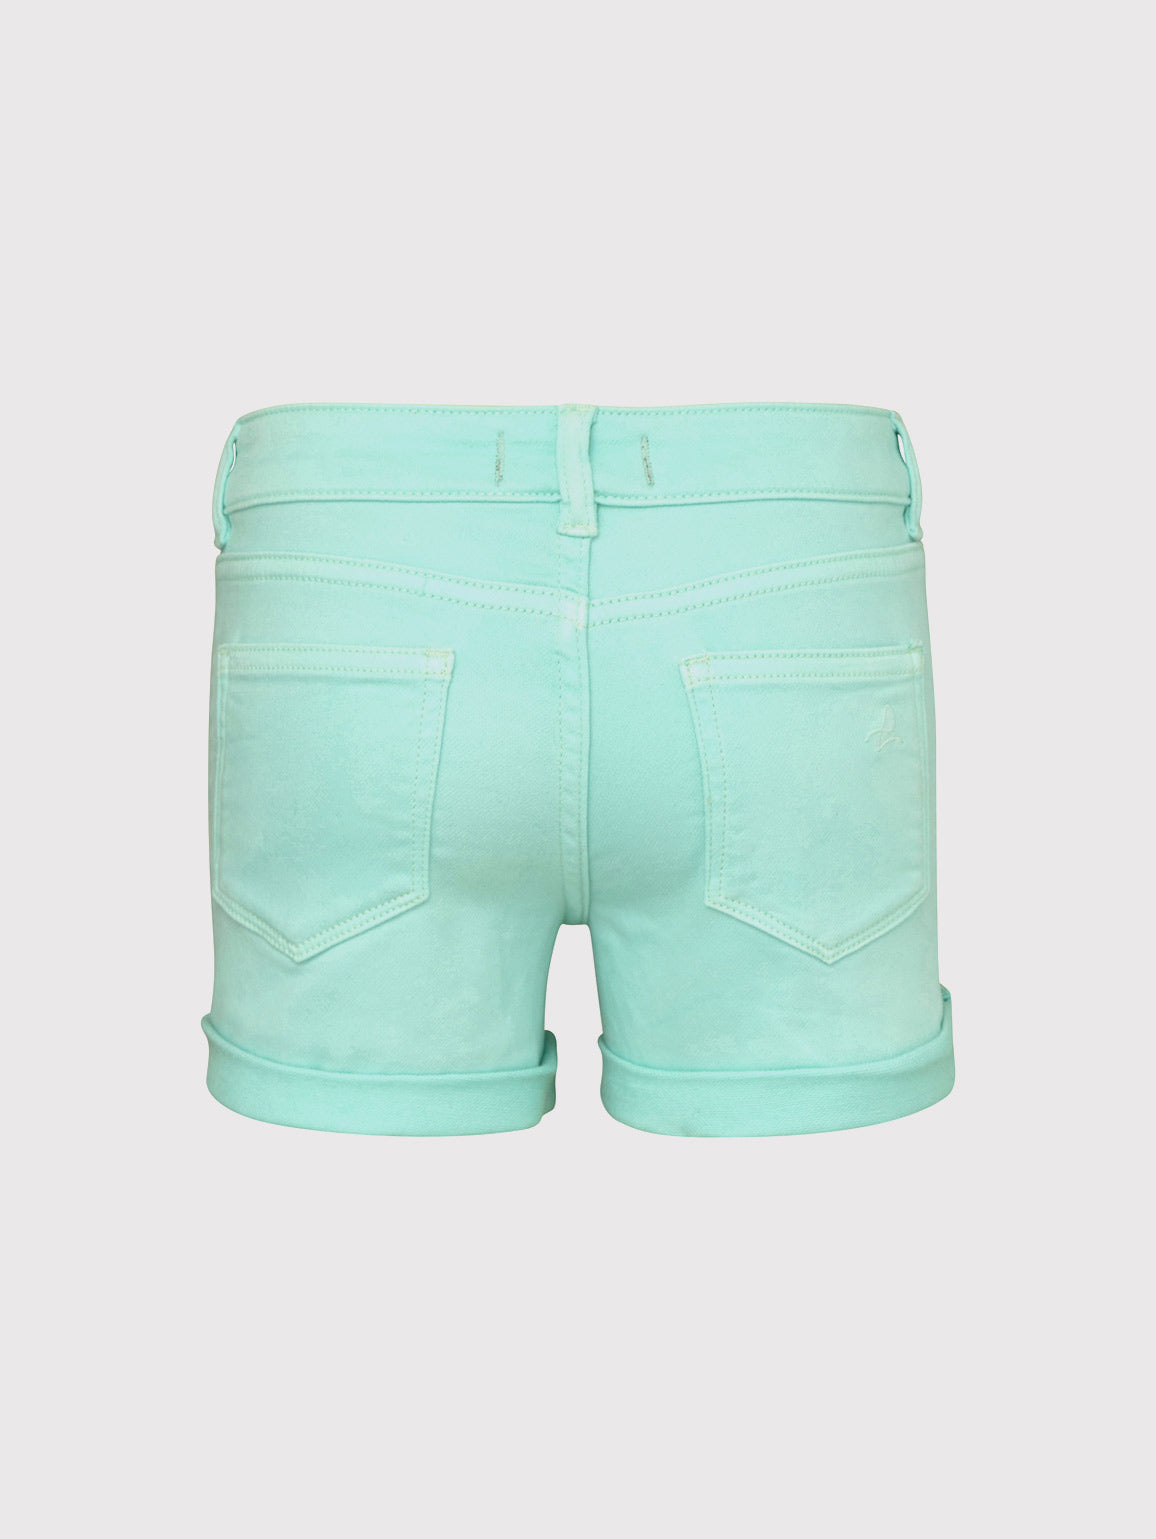 Piper Cuffed Short | Foam Green